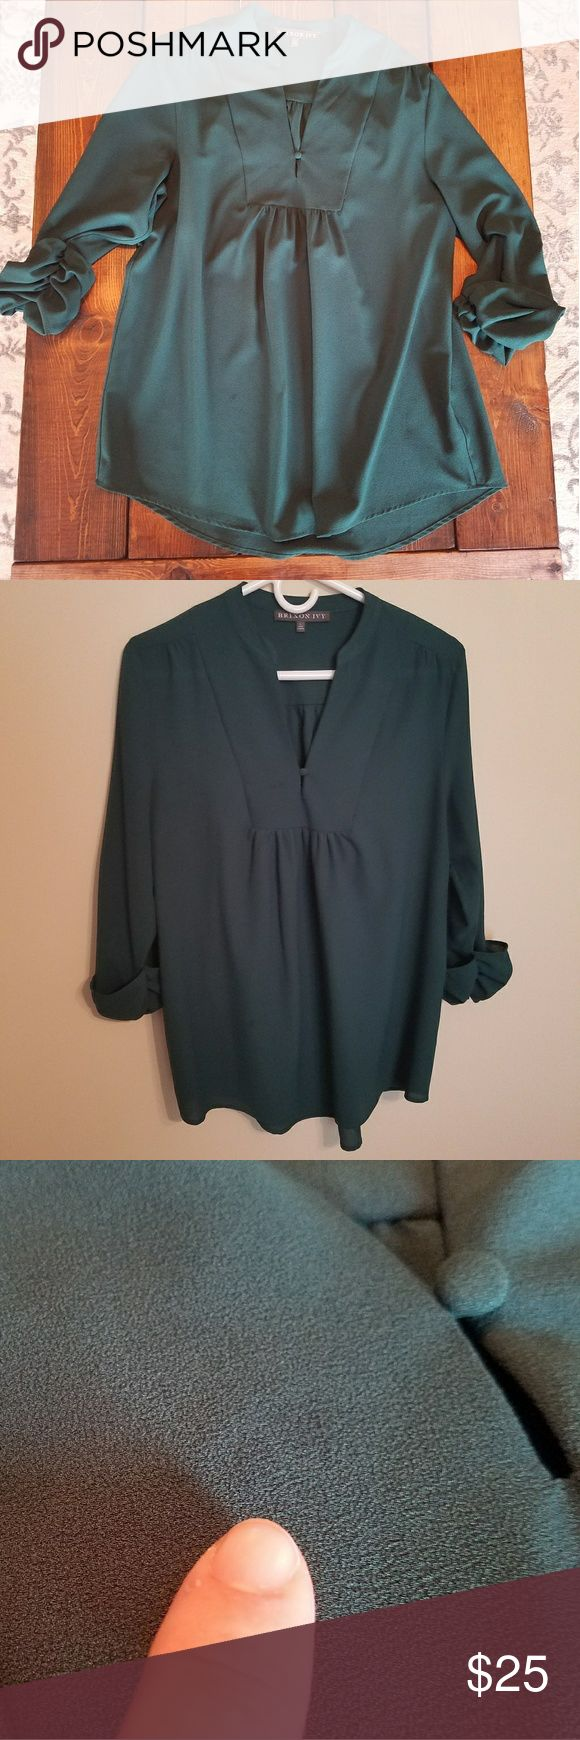 Brixon Ivy blouse hunter green size large Beautiful hunter green blouse. Elbow length sleeves. Very flattering. A few spots on this blouse as pictured. One on the front V neck but it is hard to see and one towards the bottom front. 100 % polyester. Brixton Ivy Tops Blouses